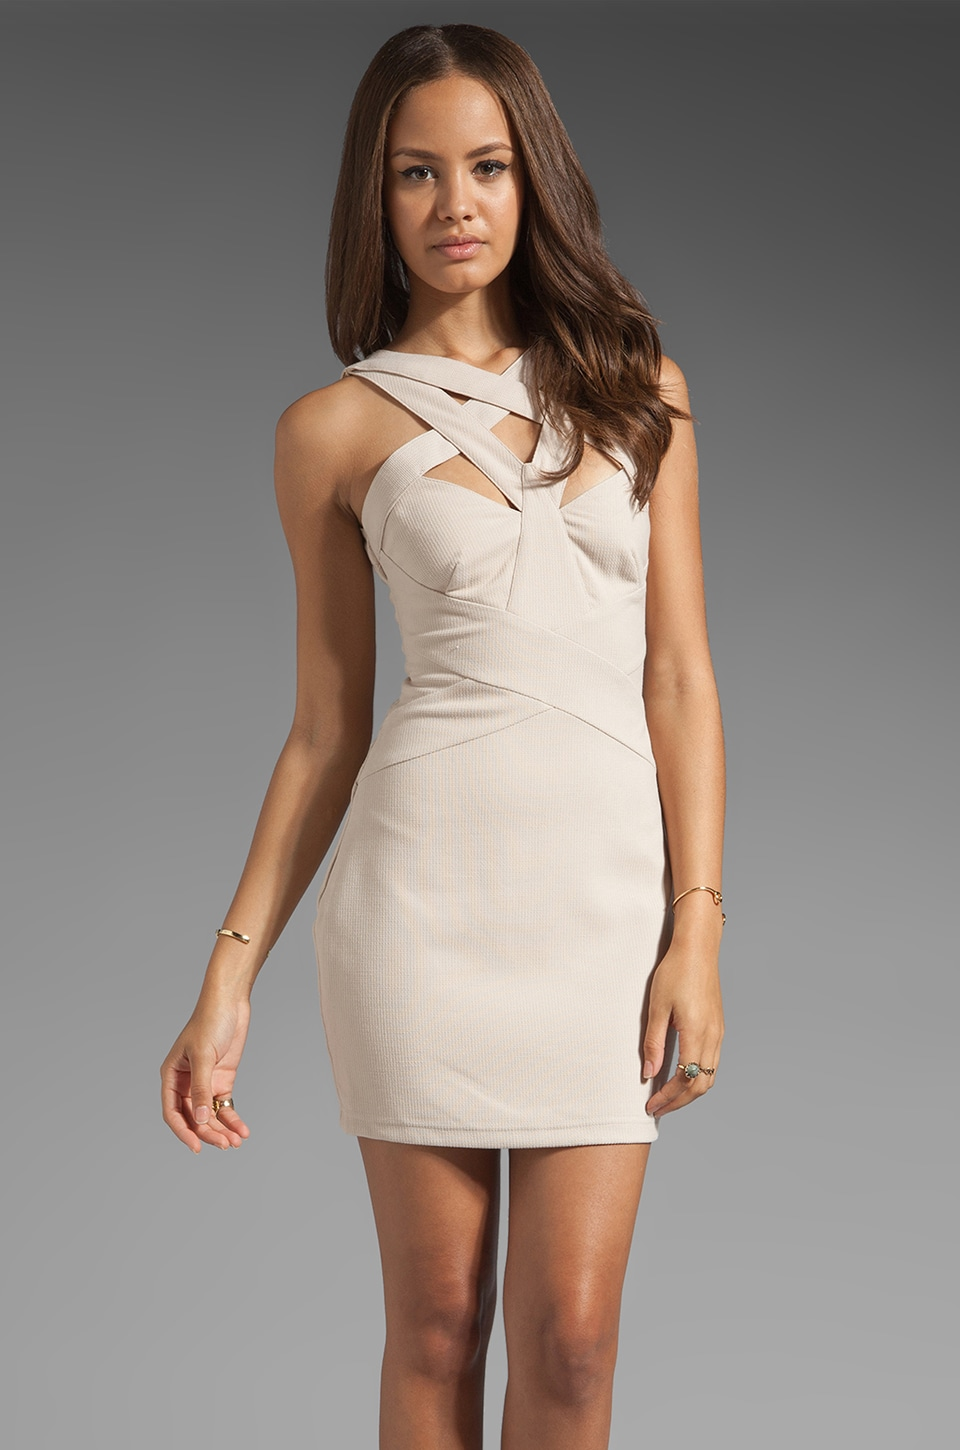 Finders Keepers Planet Waves Body Dress in Nude